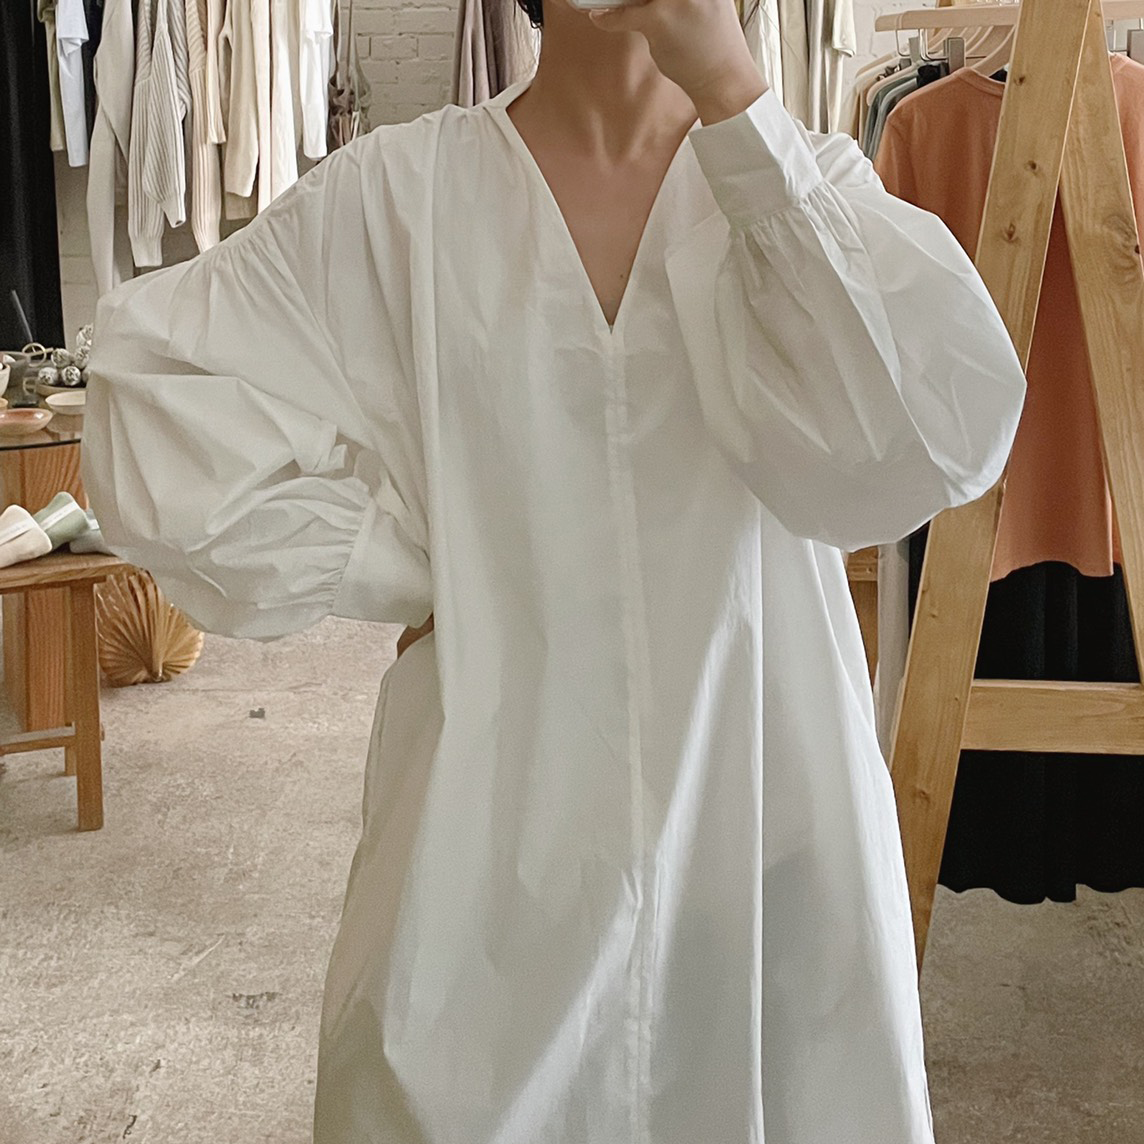 https://shainamote.com/products/the-shirt-dress-in-salt